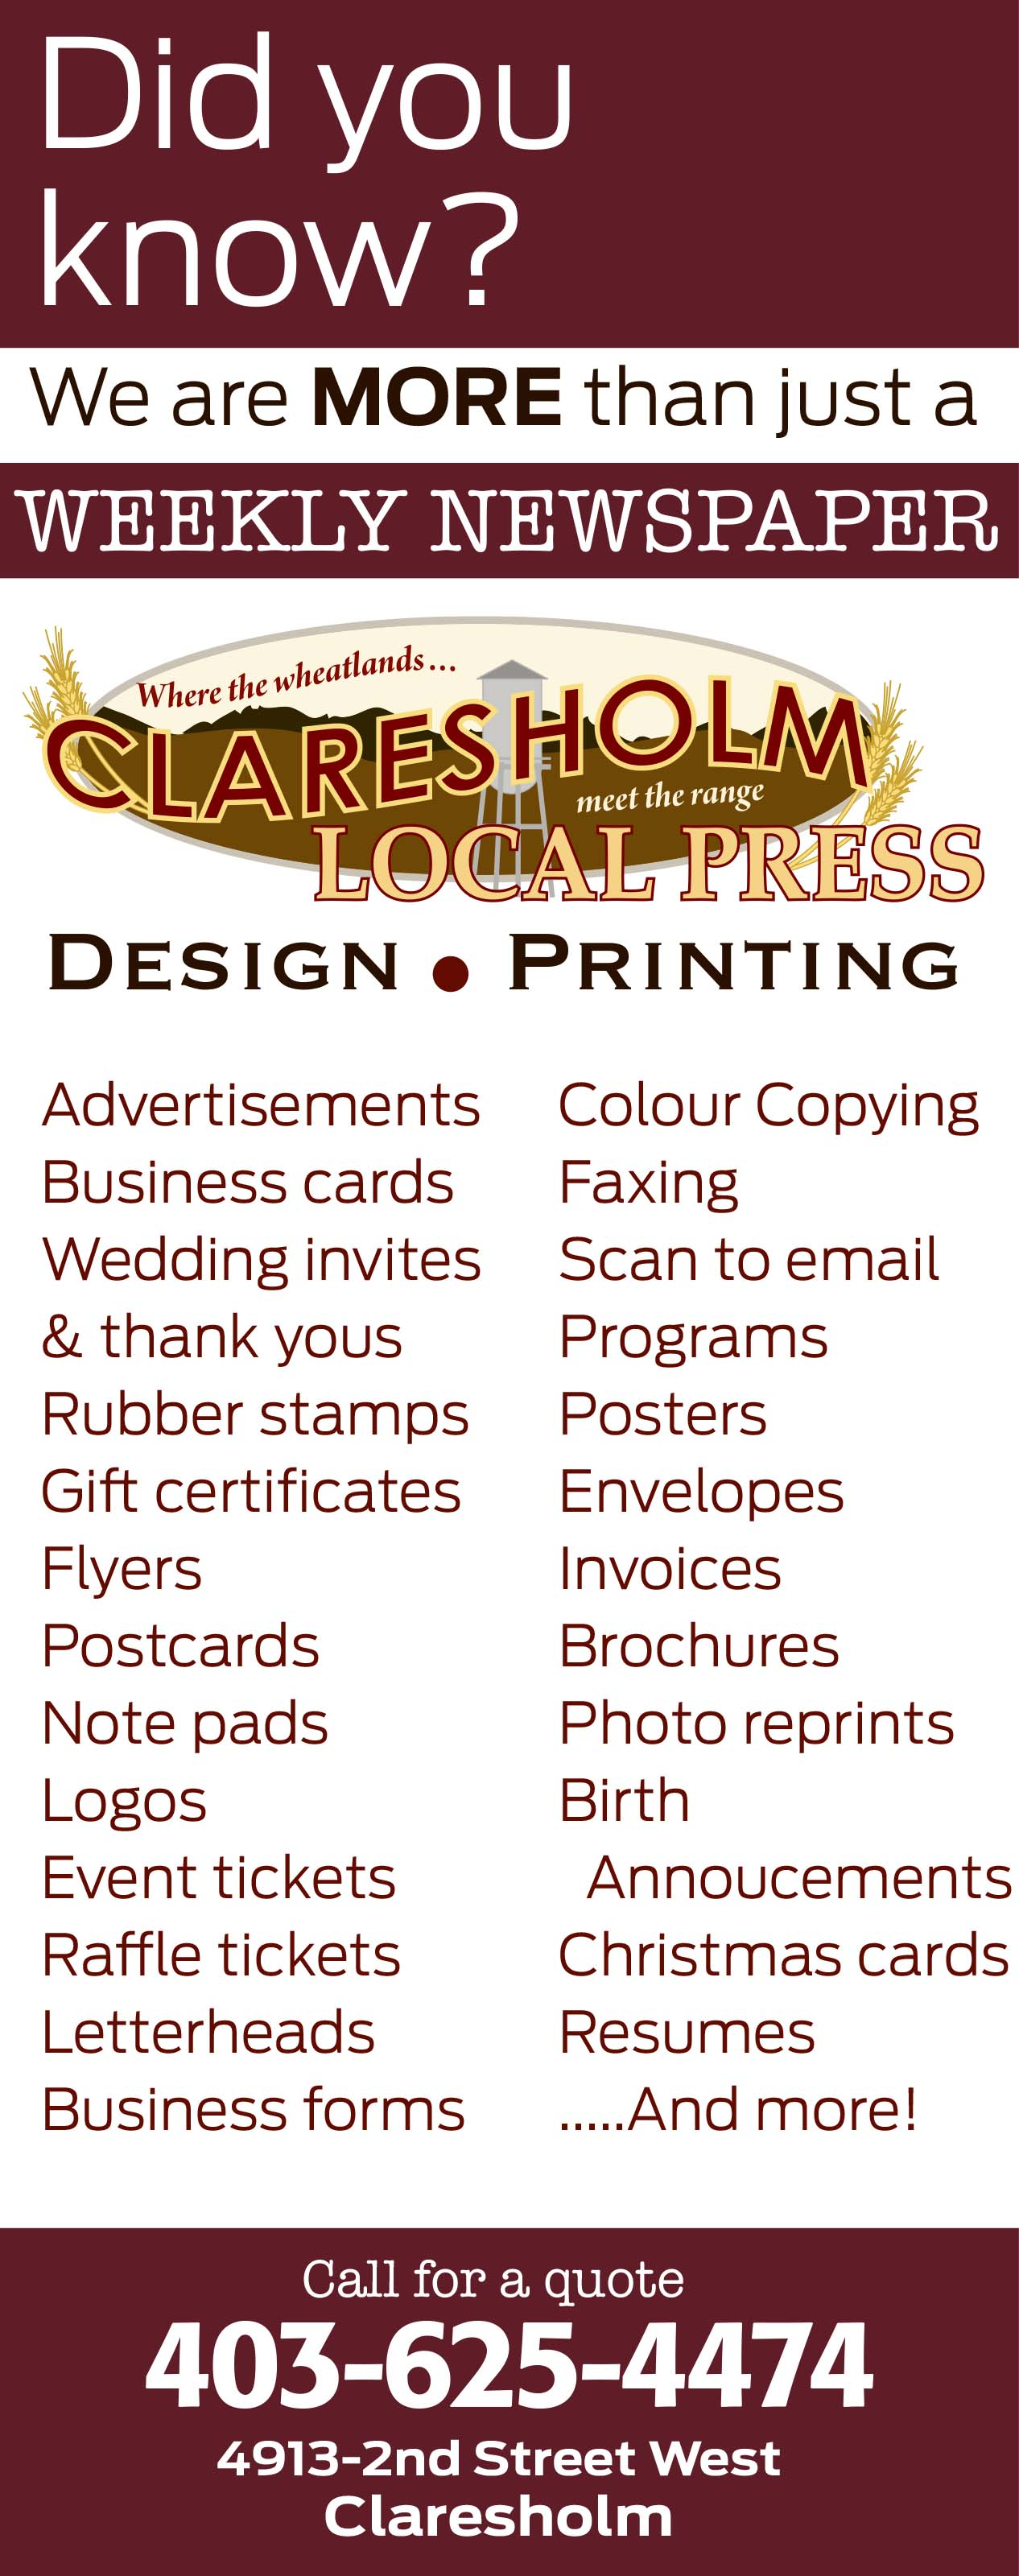 Printing Services | Claresholm Local Press